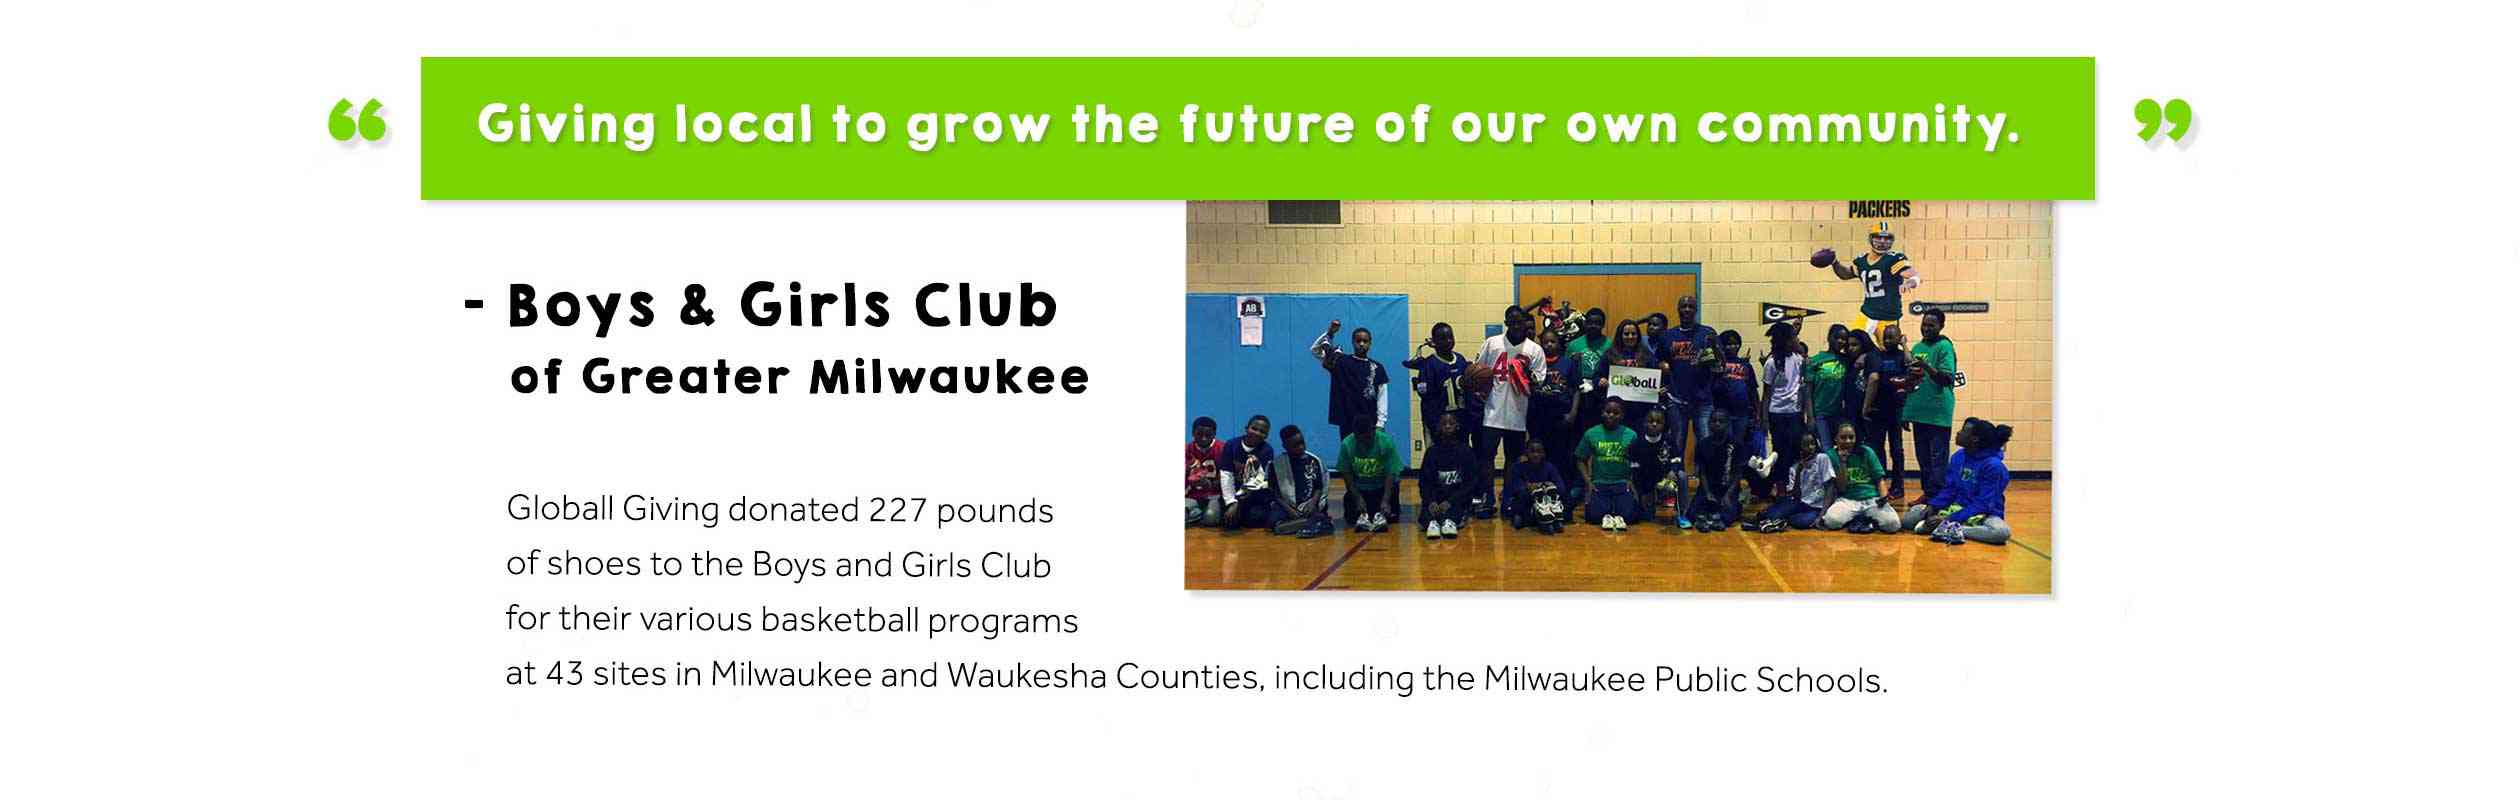 Boys & Girls Club of Greater Milwaukee